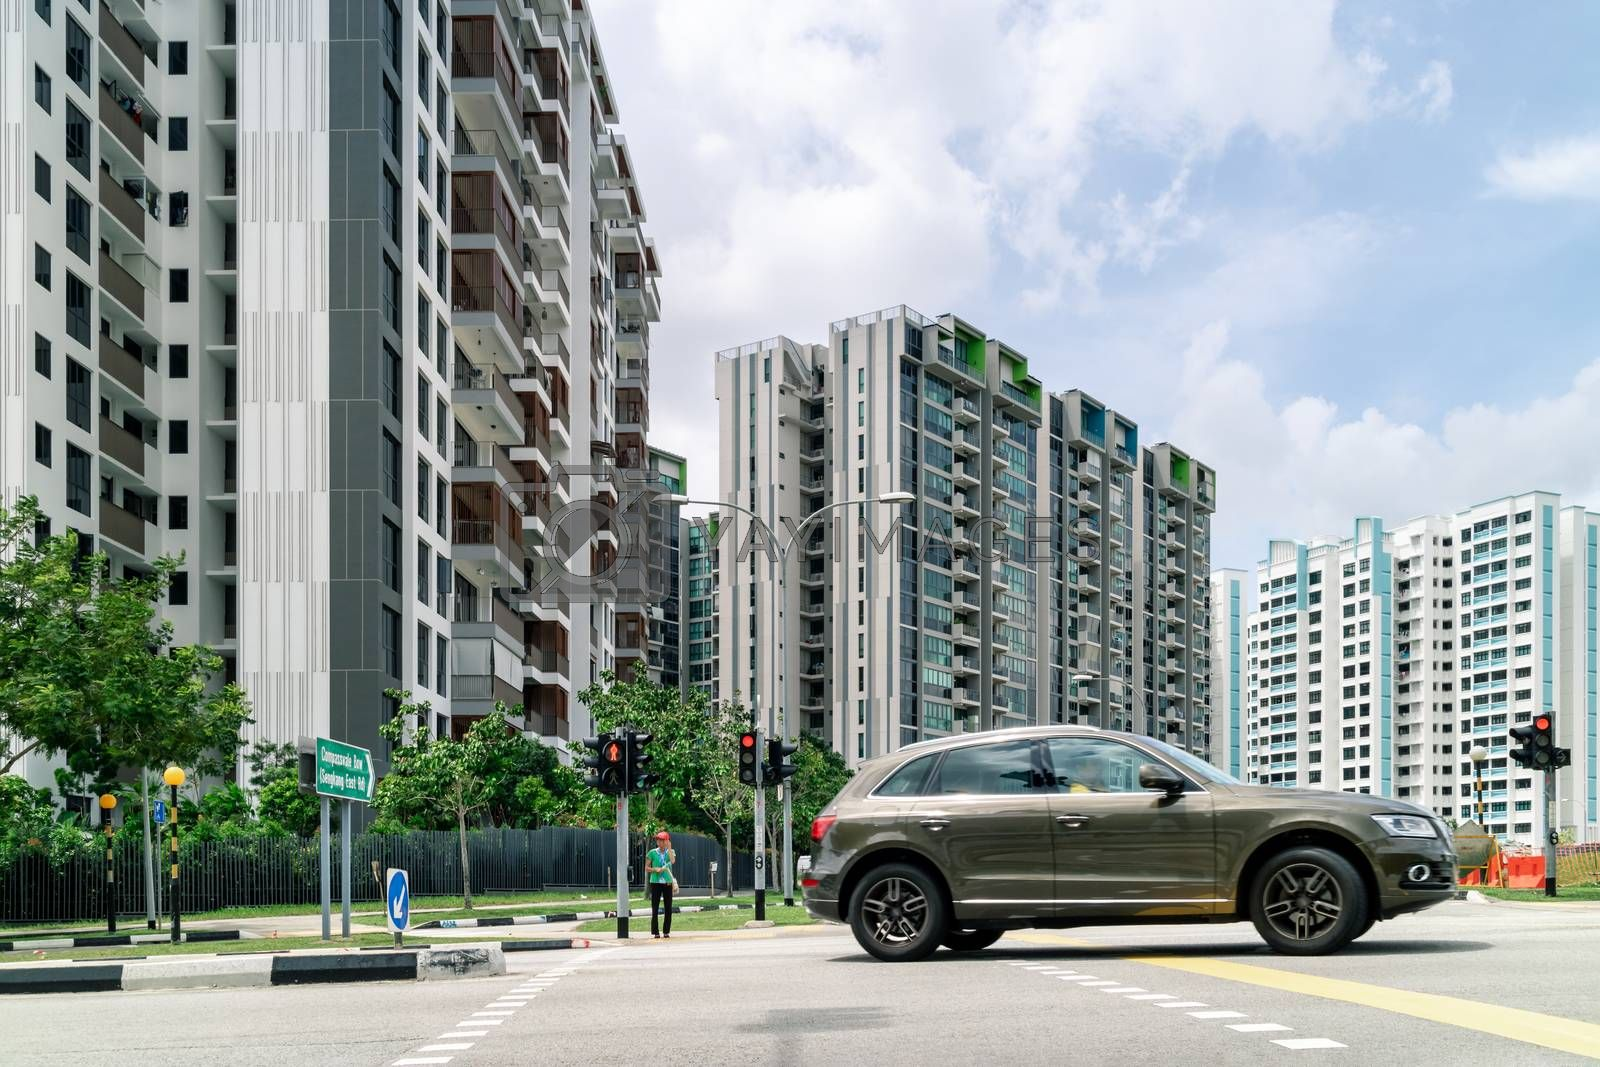 Singapore Public Housing Apartments in Punggol District, Singapore. Housing Development Board(HDB), low-rise condominium. Punggol is planning area & new town in North-East